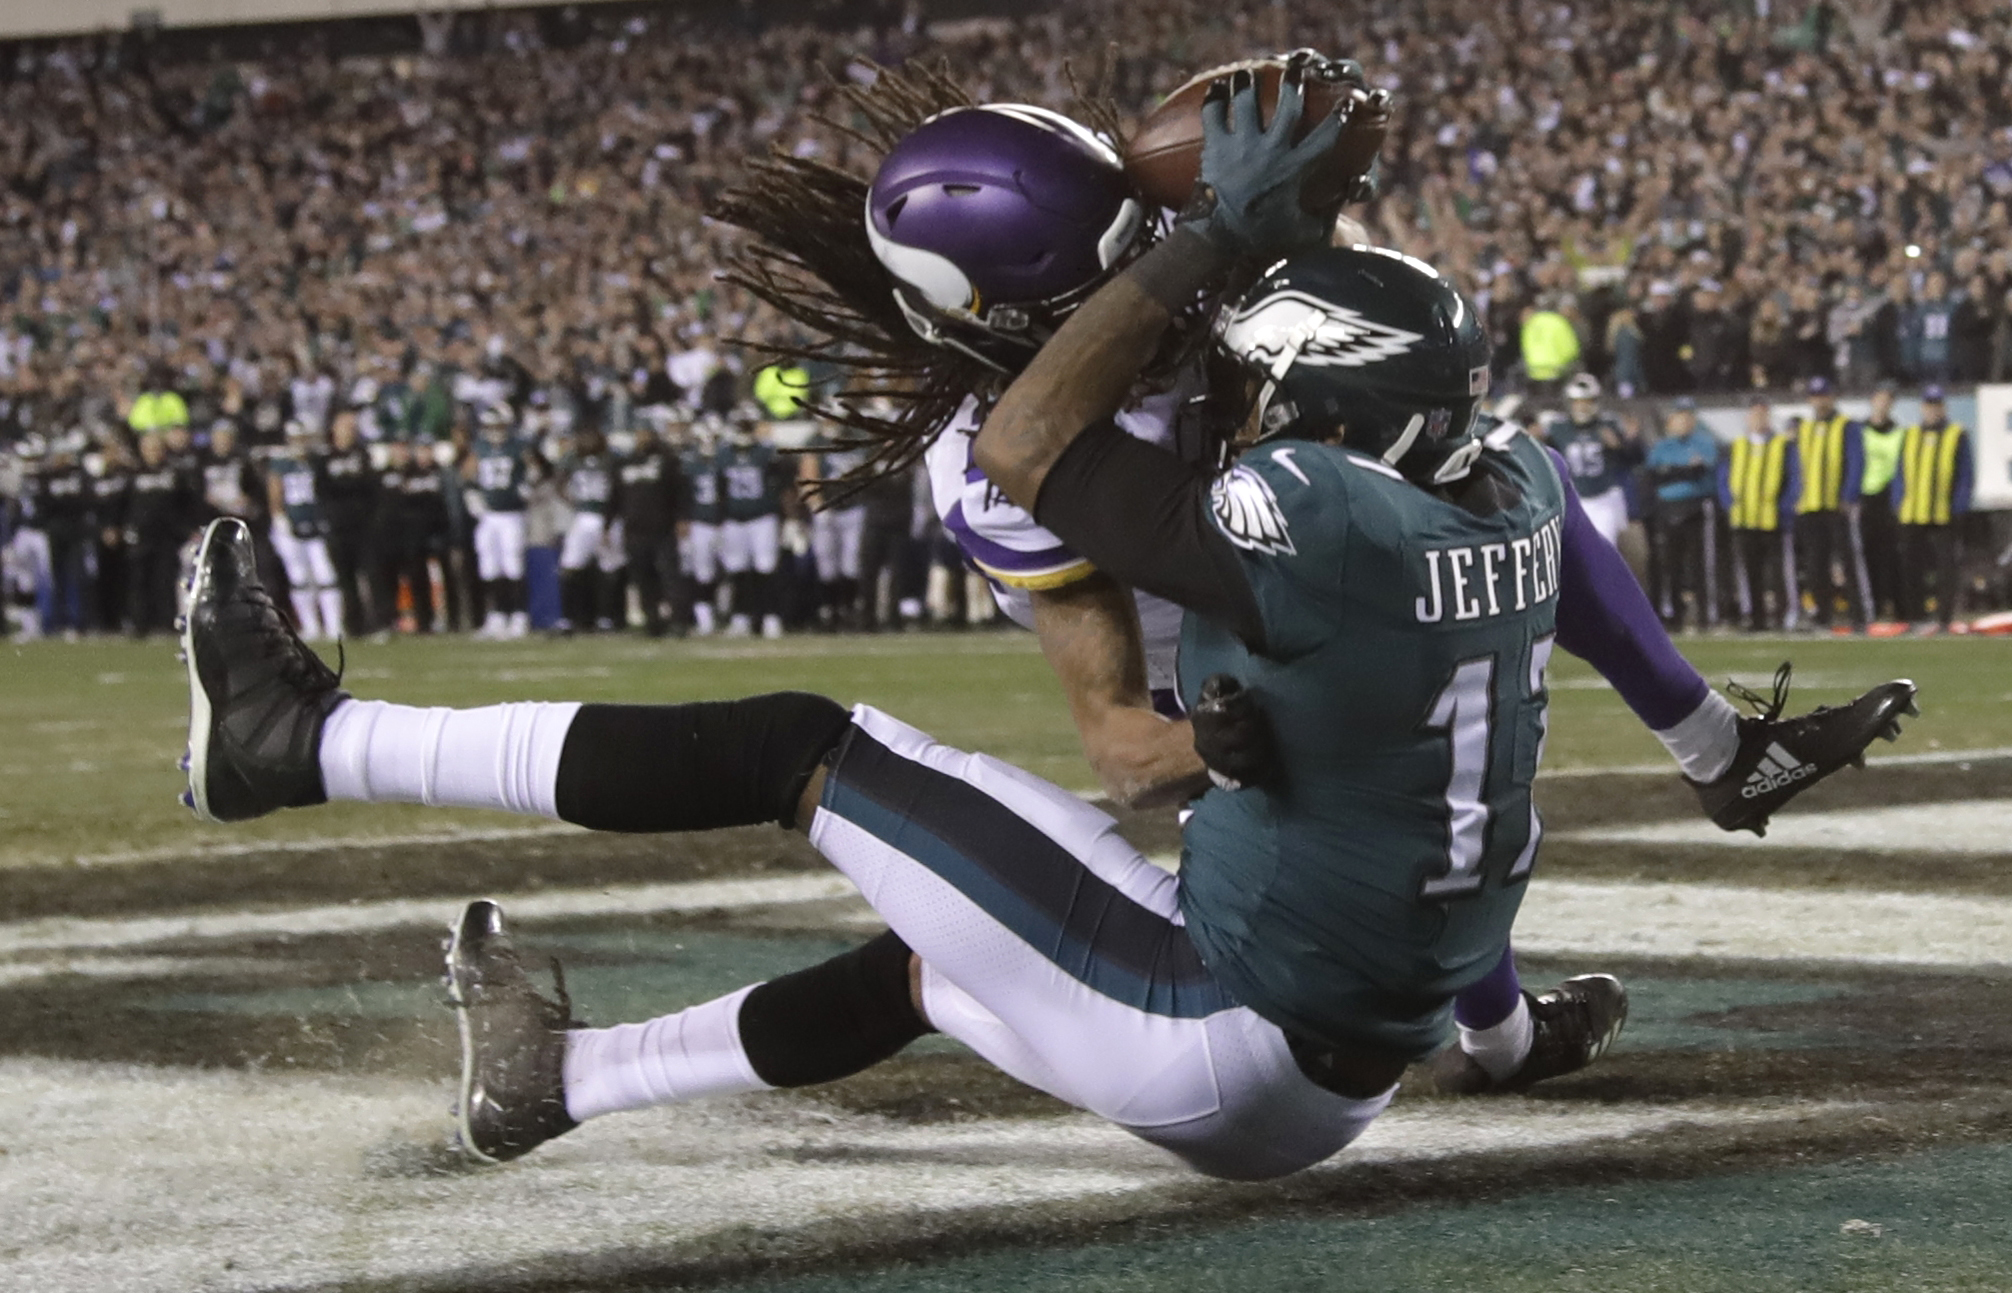 <div class='meta'><div class='origin-logo' data-origin='AP'></div><span class='caption-text' data-credit='AP Photo/Matt Rourke'>Philadelphia Eagles' Alshon Jeffery catches a touchdown pass during the second half.</span></div>